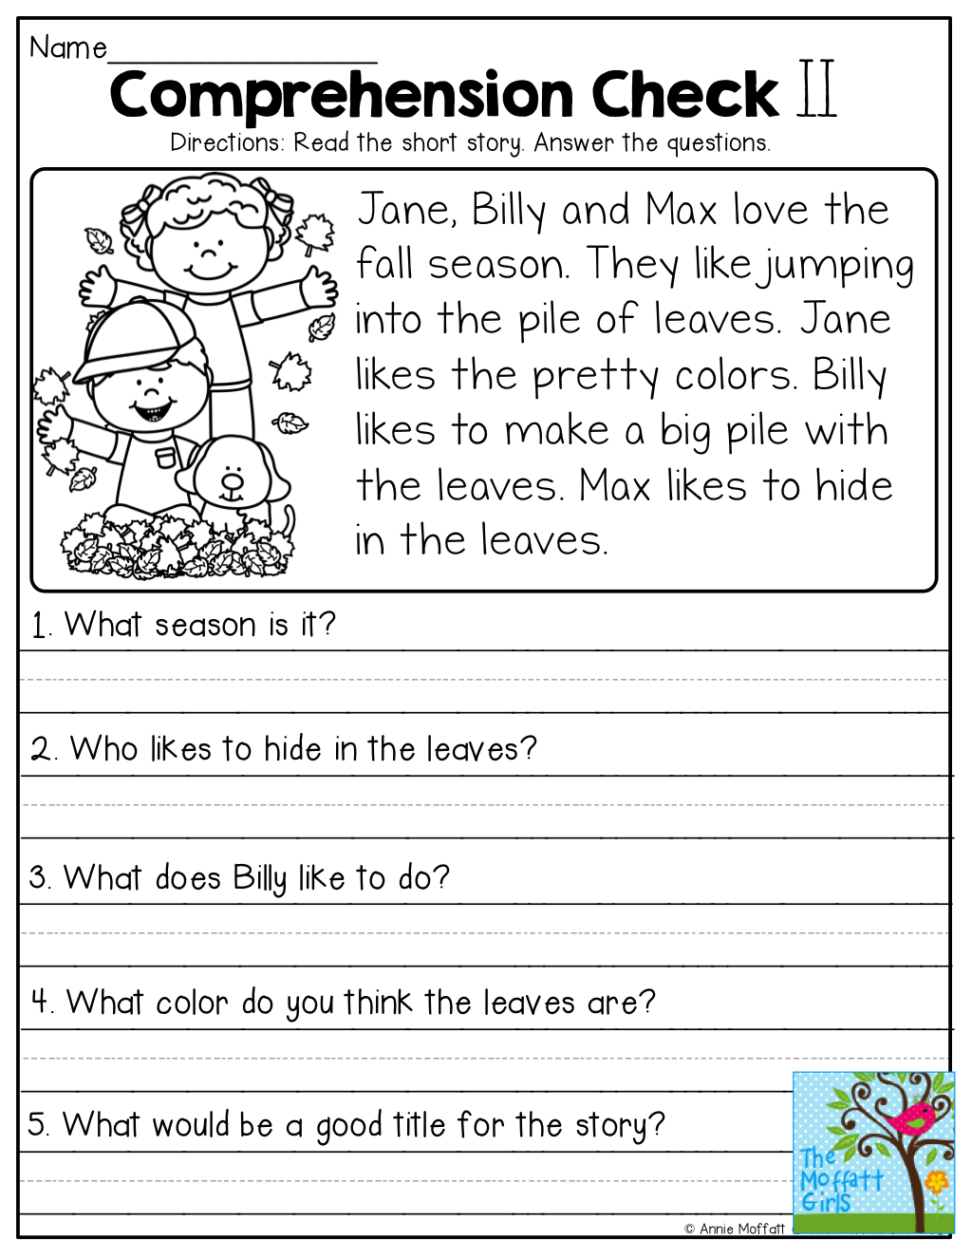 Worksheet. Free Printable Reading Comprehension Worksheets - Free Printable Reading Comprehension Worksheets For Kindergarten